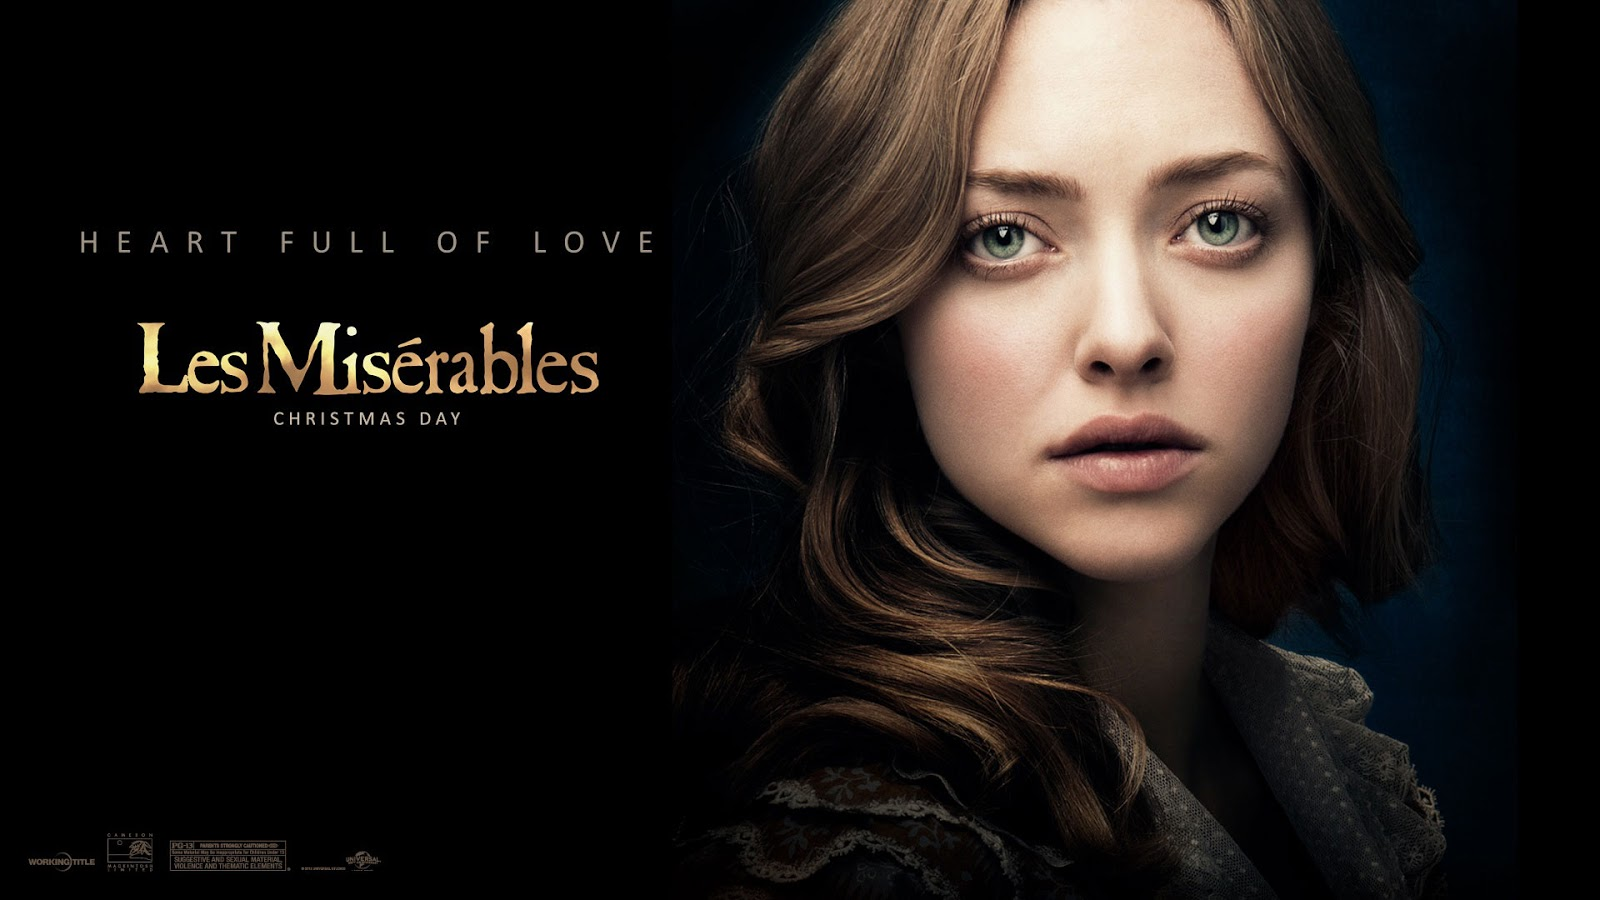 http://3.bp.blogspot.com/-9ZFWxwh4oxA/UNbBDy6lqNI/AAAAAAAANcc/q1XICZThnNU/s1600/amanda-seyfried-in-les-miserables-desktop-%2526-mac-wallpaper.jpg